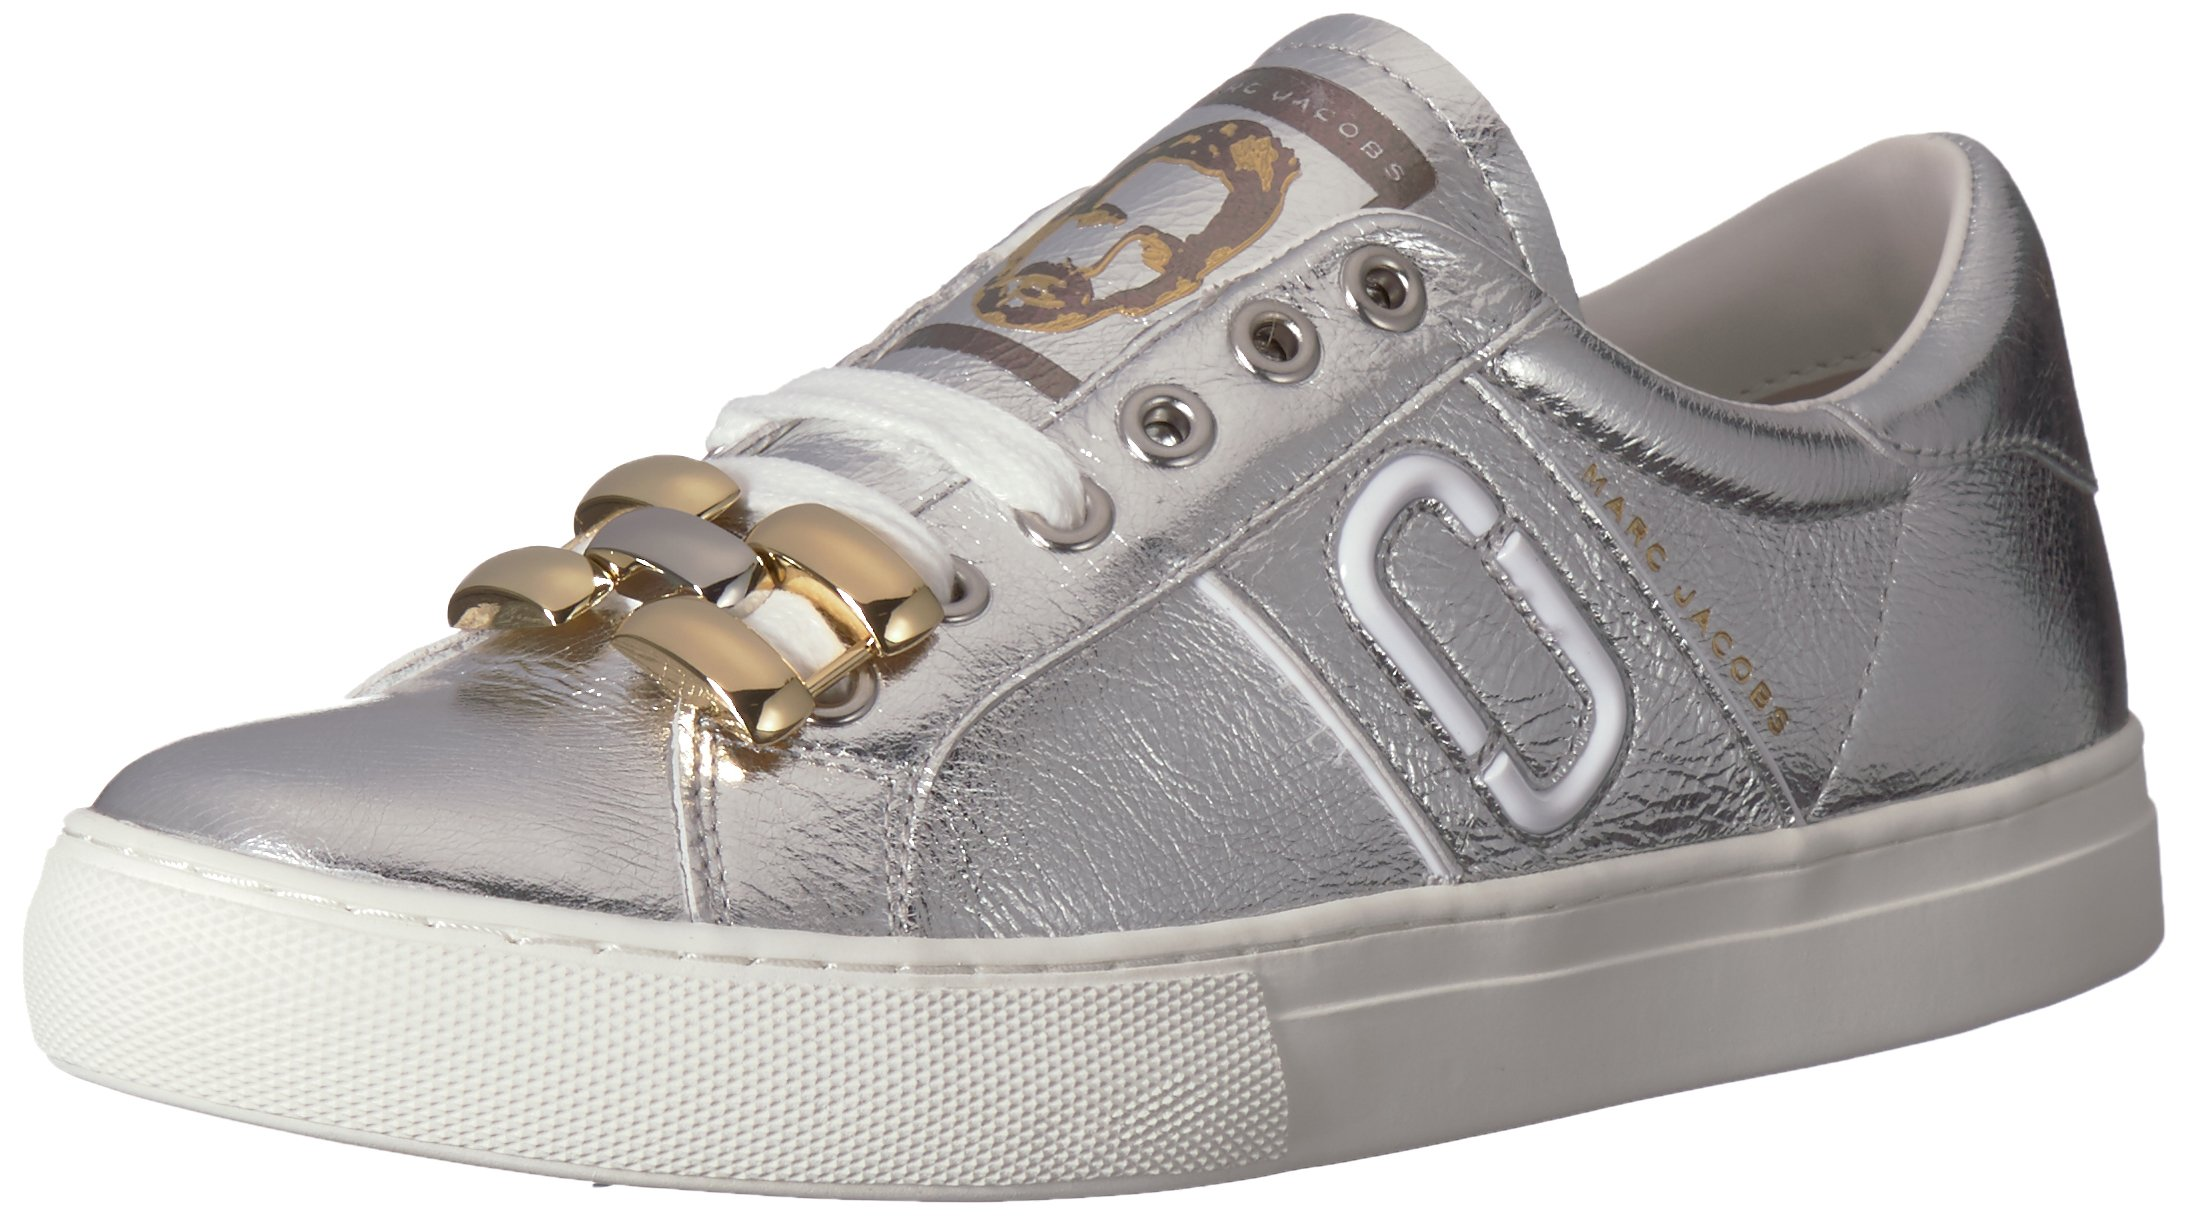 Marc Jacobs Women's Empire Chain Link Sneaker, Silver, 37 M EU (7 US)